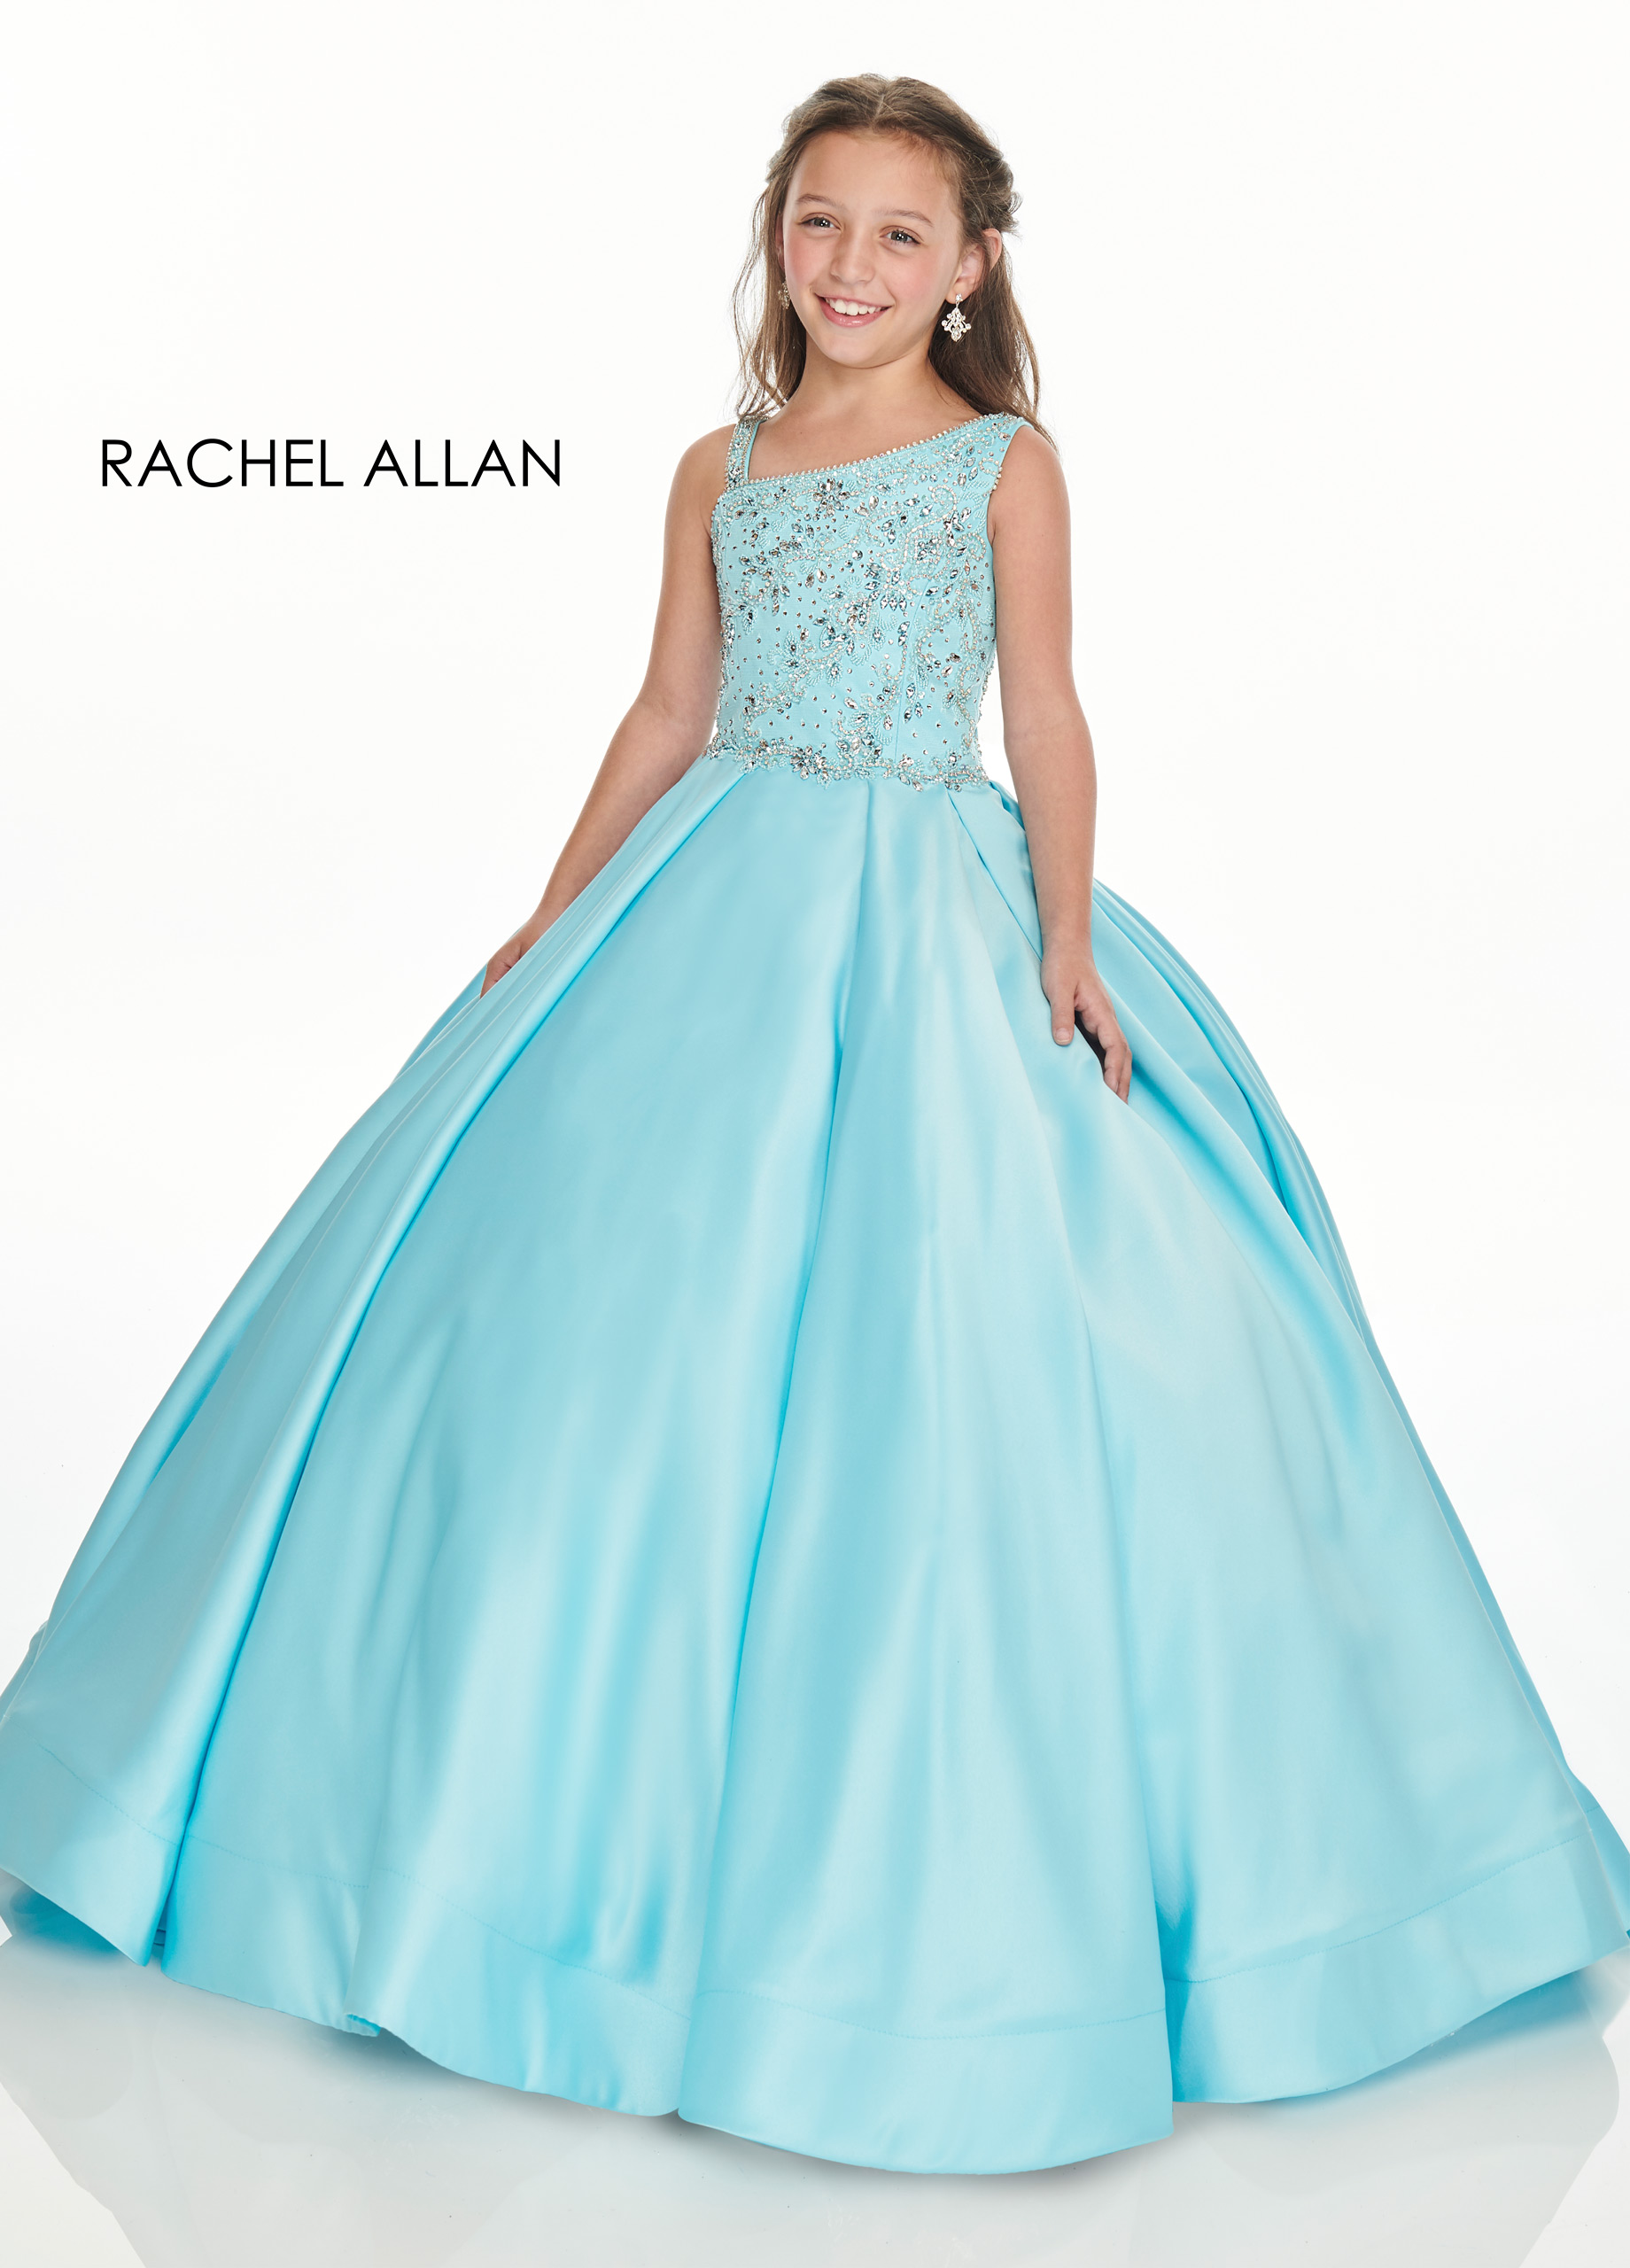 Asymmetric Ball Gowns Little Girl Pageant Dresses in Aqua Color